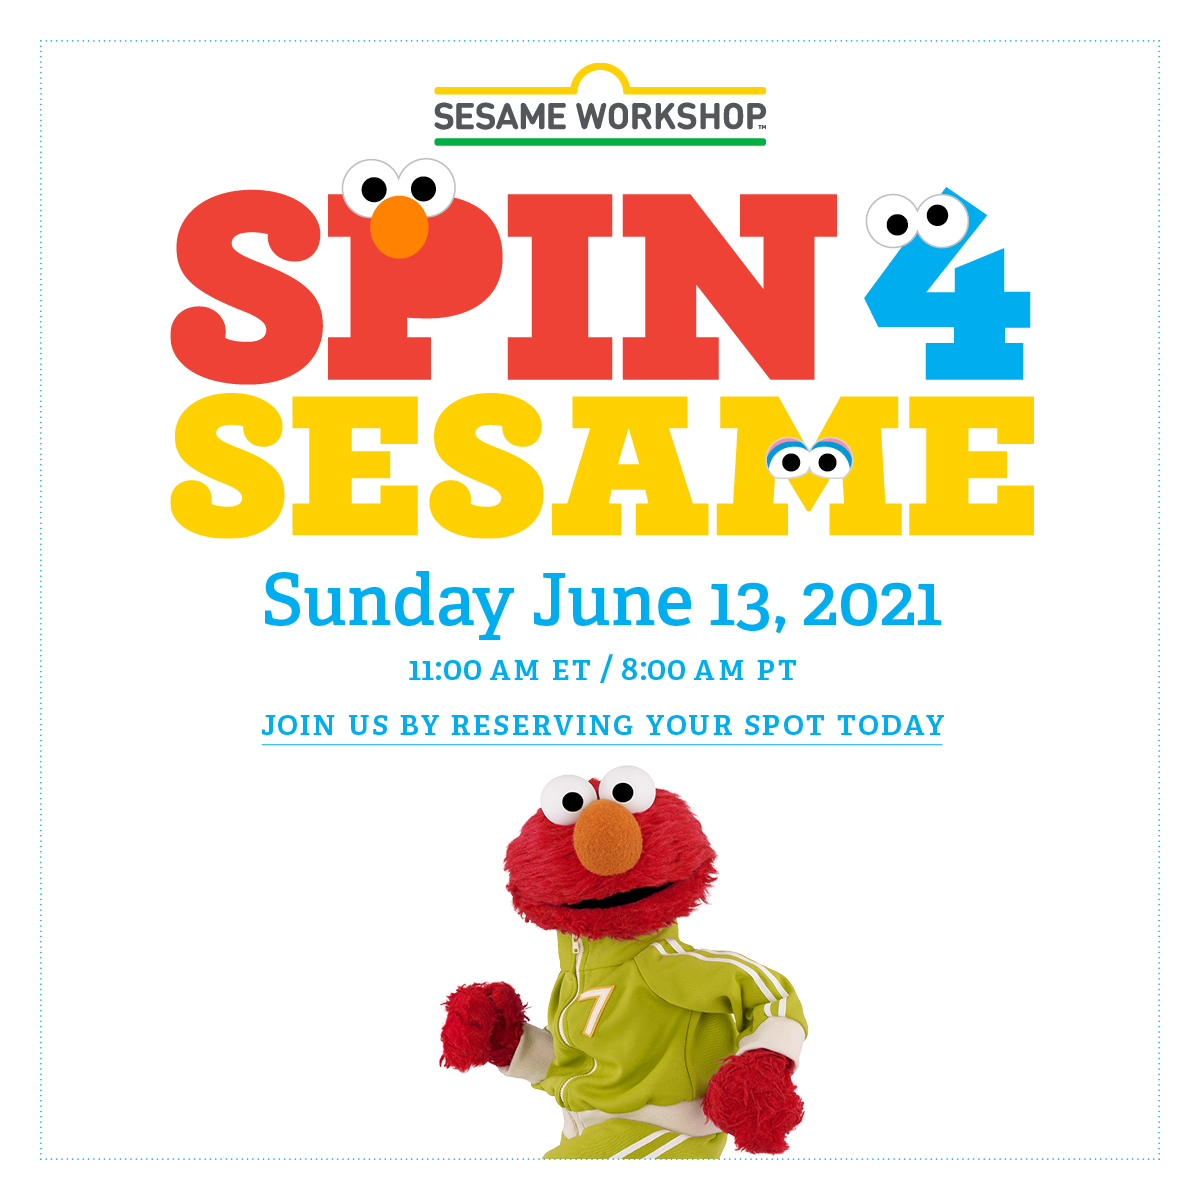 This year's Spin4Sesame is virtual, but costumes are still encouraged! On Sunday, join in on the fun and sweat for a good cause! Participate by using the Peloton Bike and App.  For ride details and to reserve your spot visit: https://t.co/lFcjCCKWgS @onepeloton https://t.co/jQqs1yoPGh